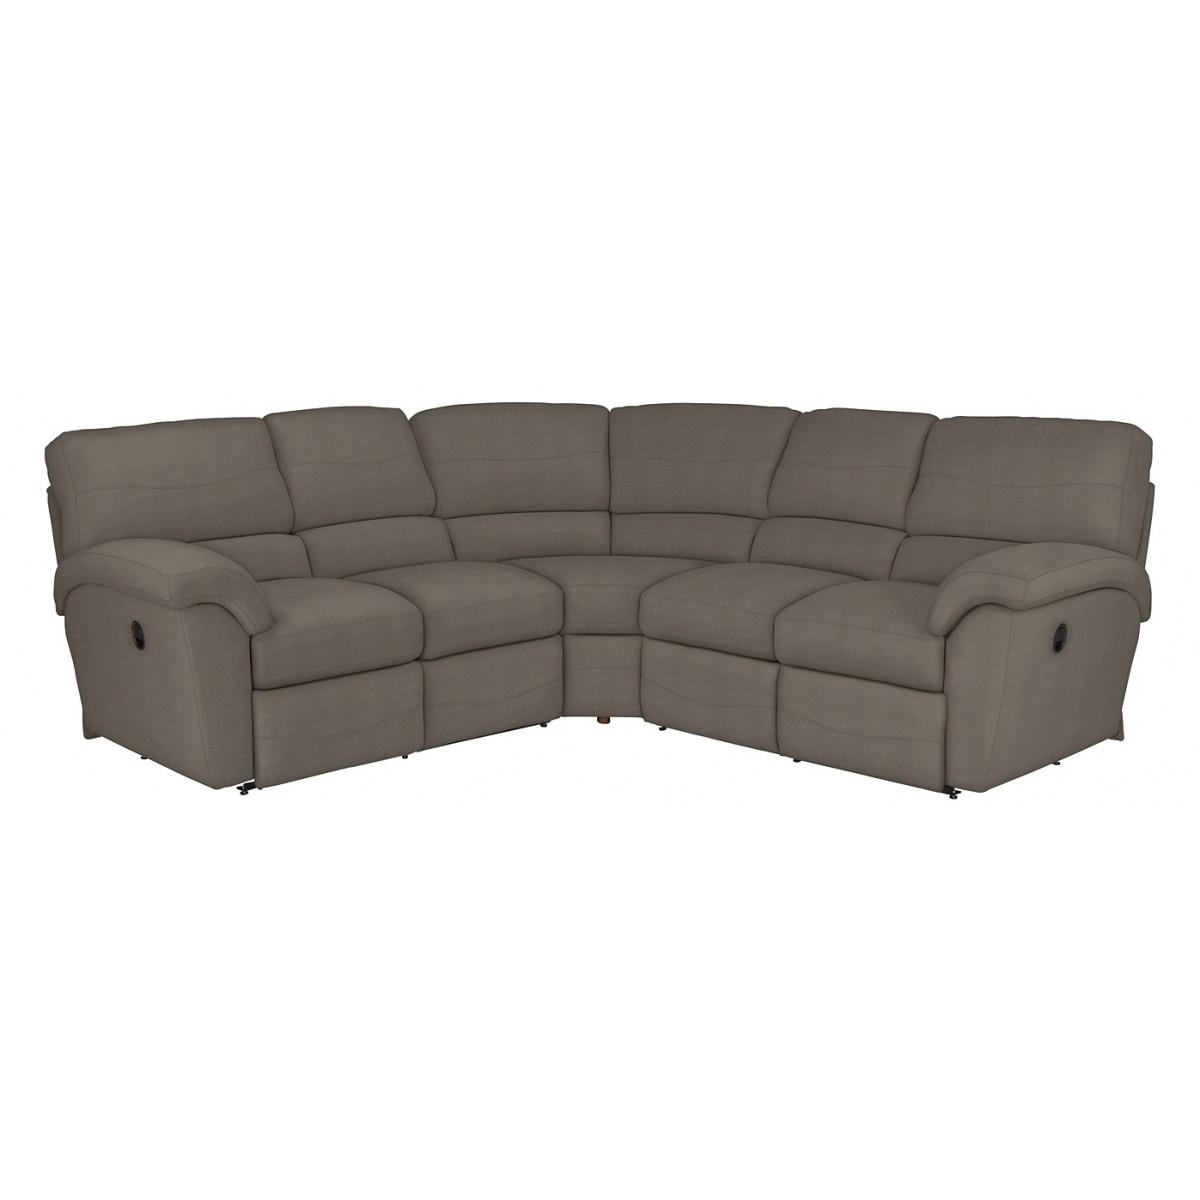 Lazyboy Sectional Intended For Lazy Boy Sectional (View 9 of 20)